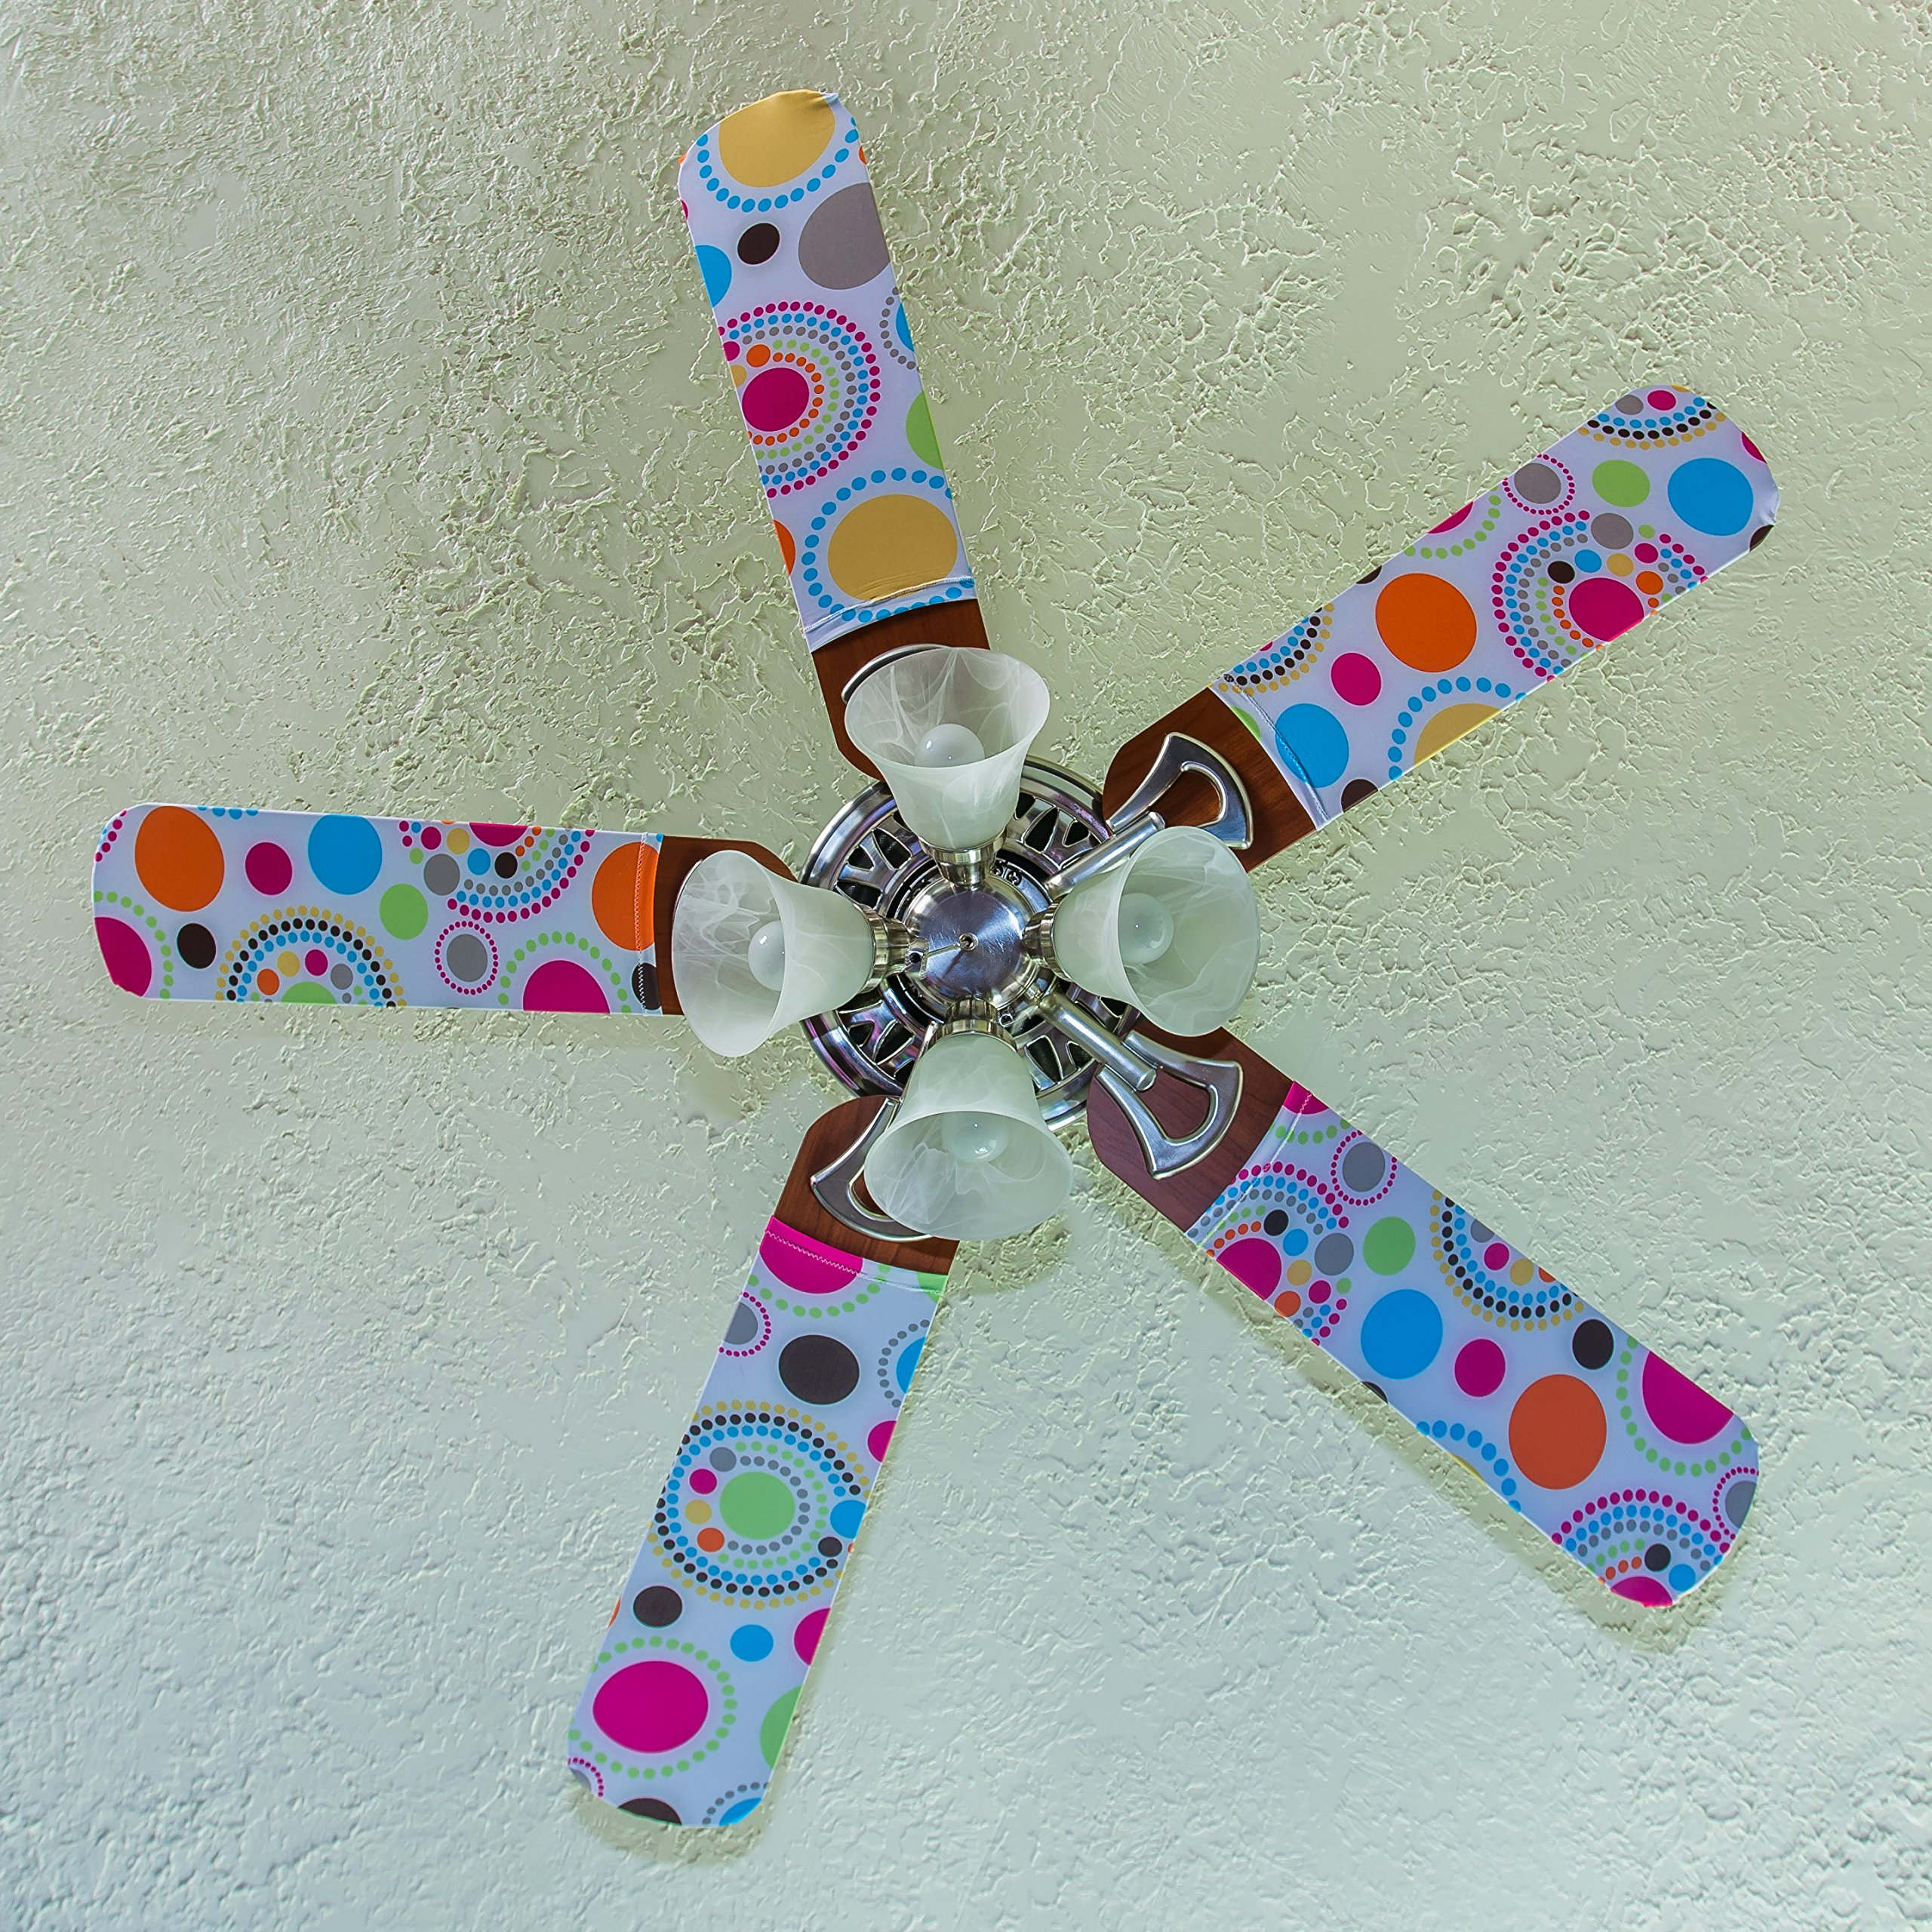 Fancy Blade Ceiling Fan Accessories Blade Cover Decoration, Polka Dot Small